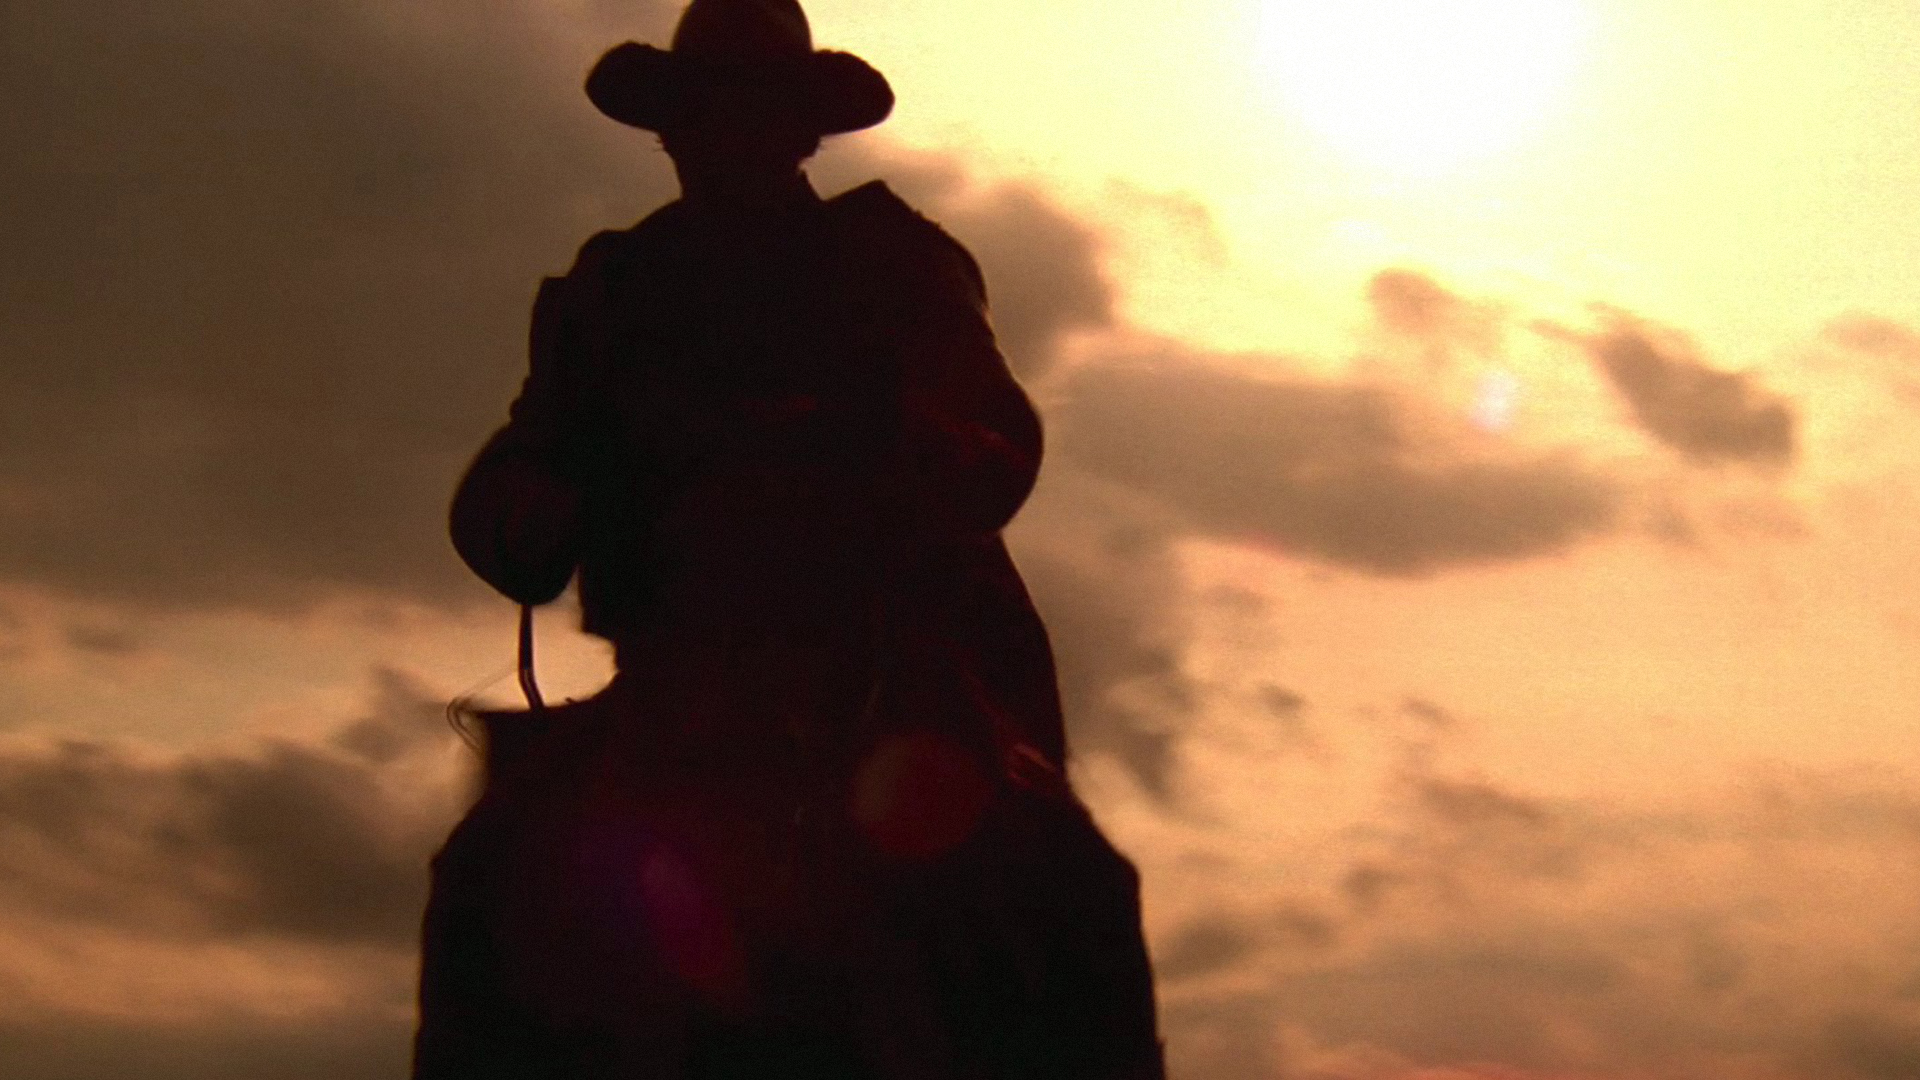 Cowboy At Sunset Hd Wallpaper Western Wallpapers Pictures 1920x1080